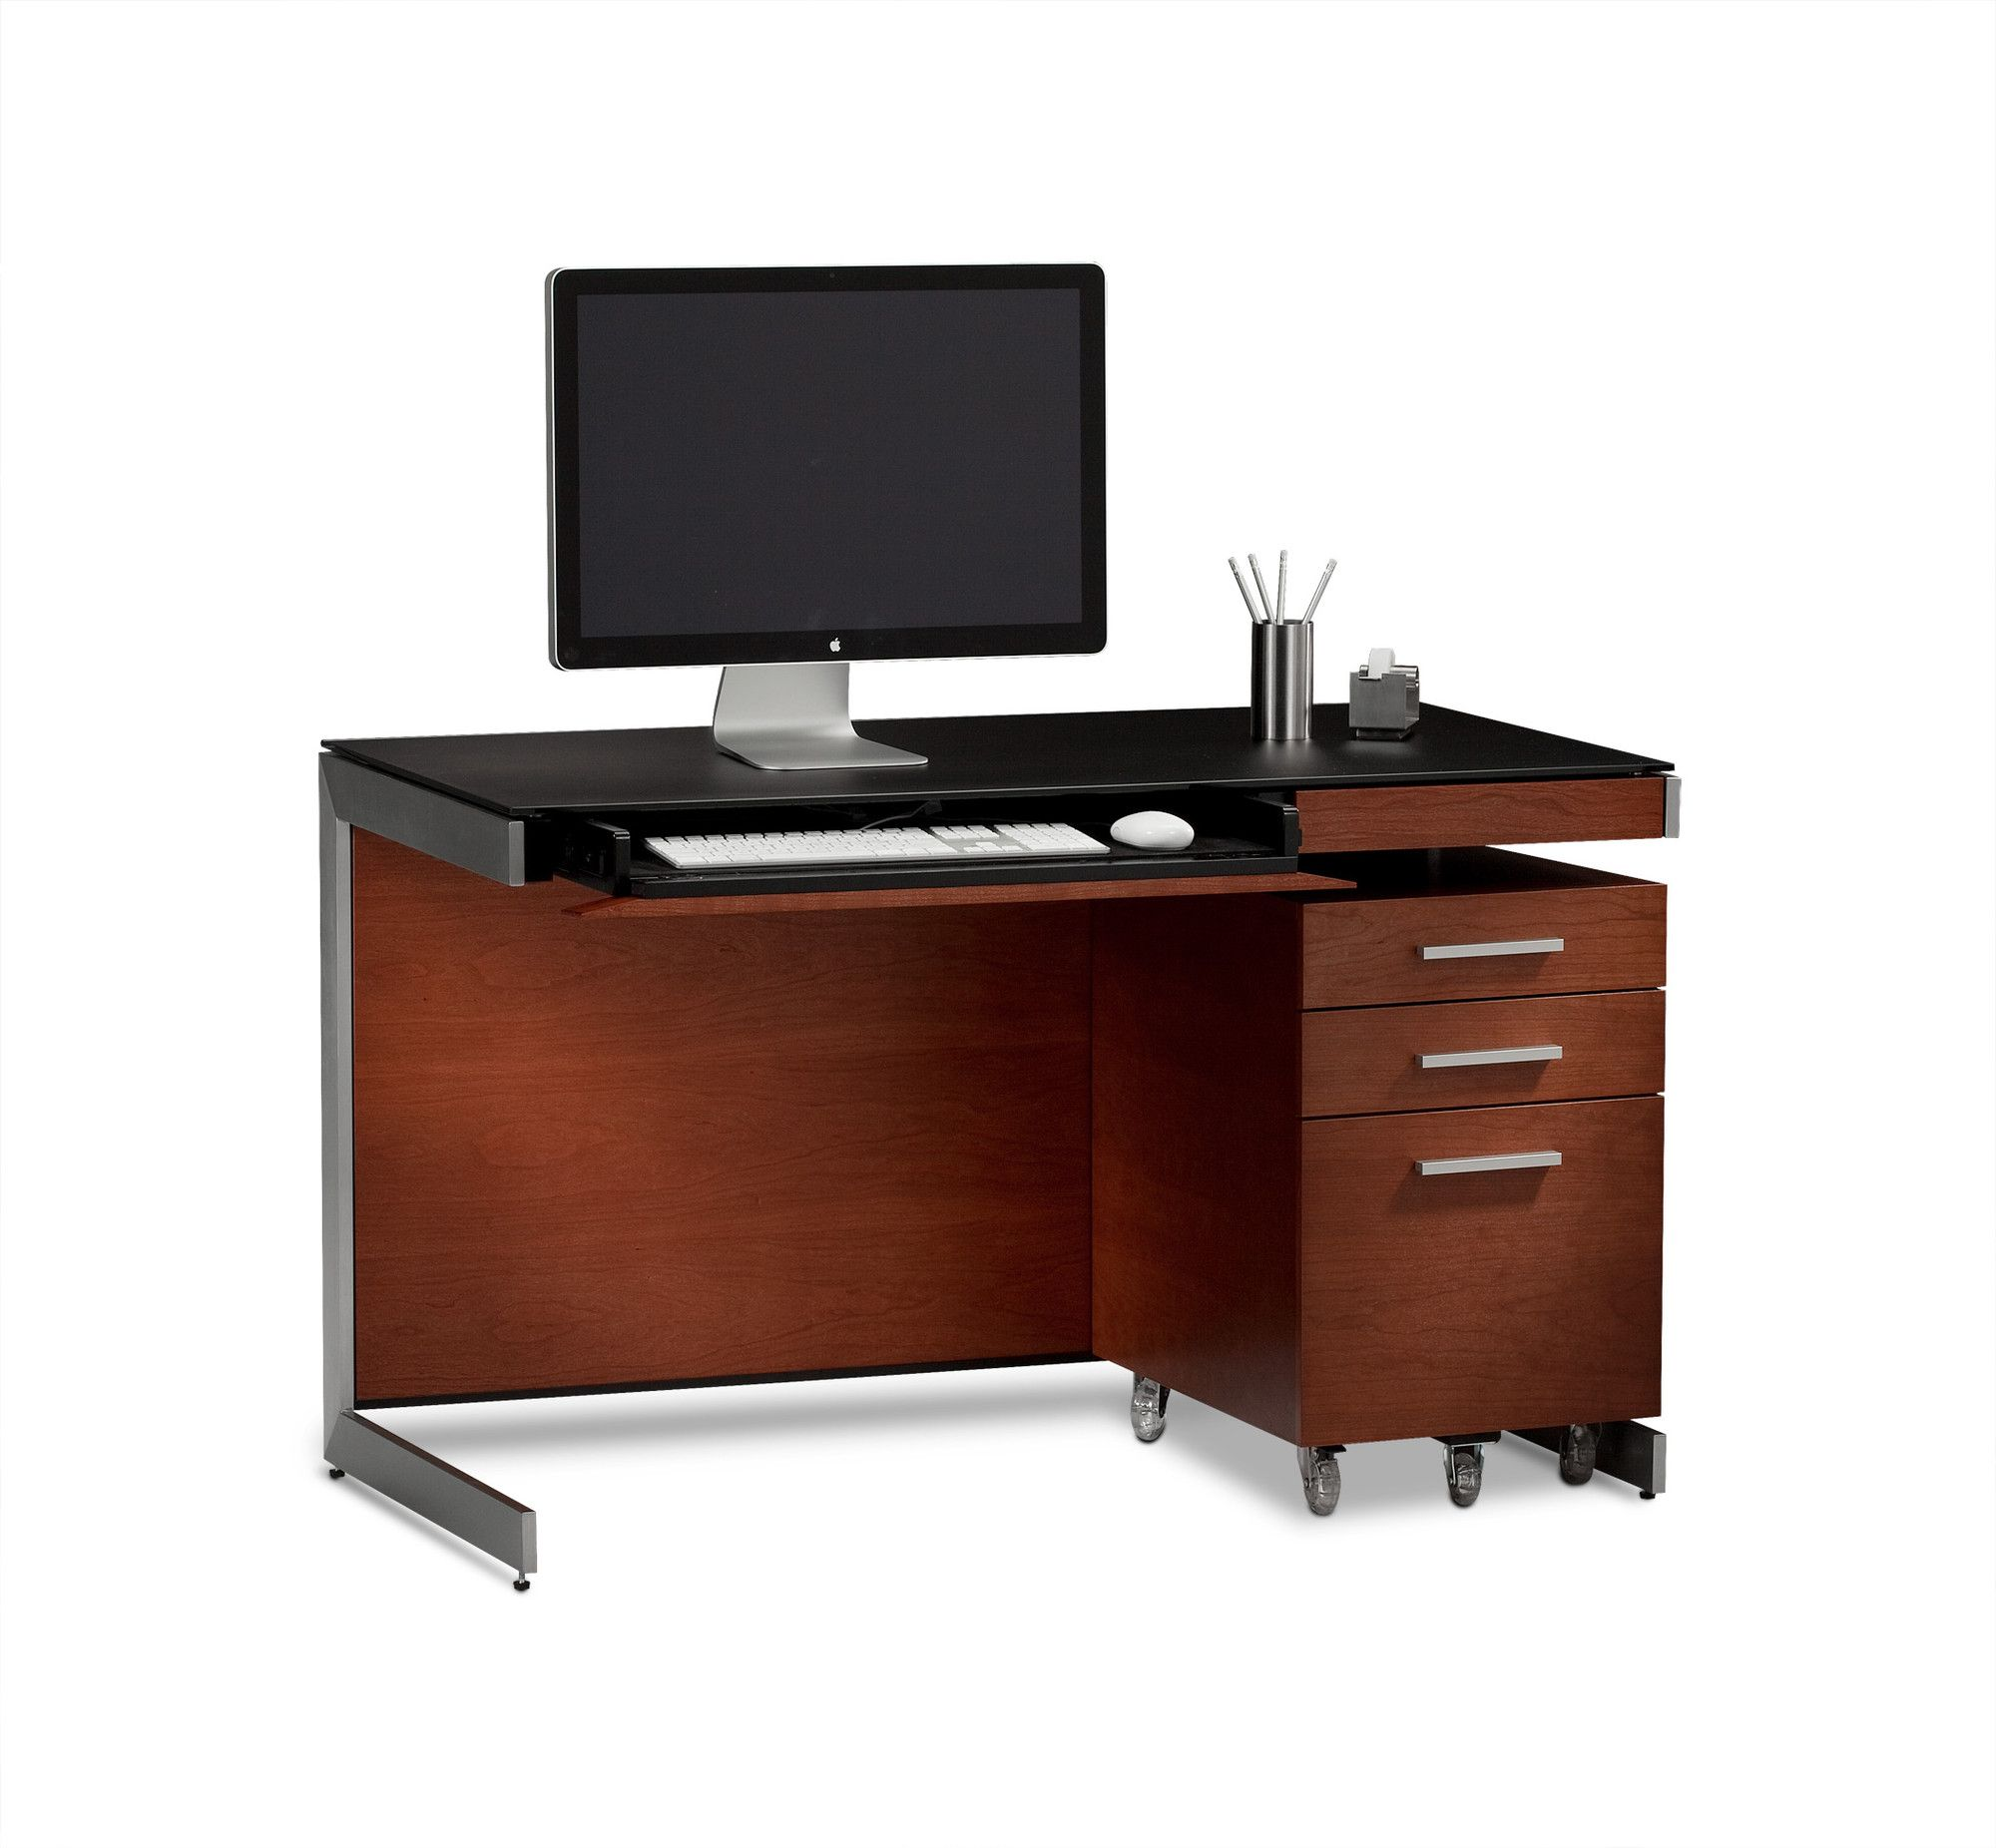 Bdi Usa 29 Sequel Compact Computer Desk With File Cabinet Small Computer Desk Computer Desk Design Modern Executive Desk